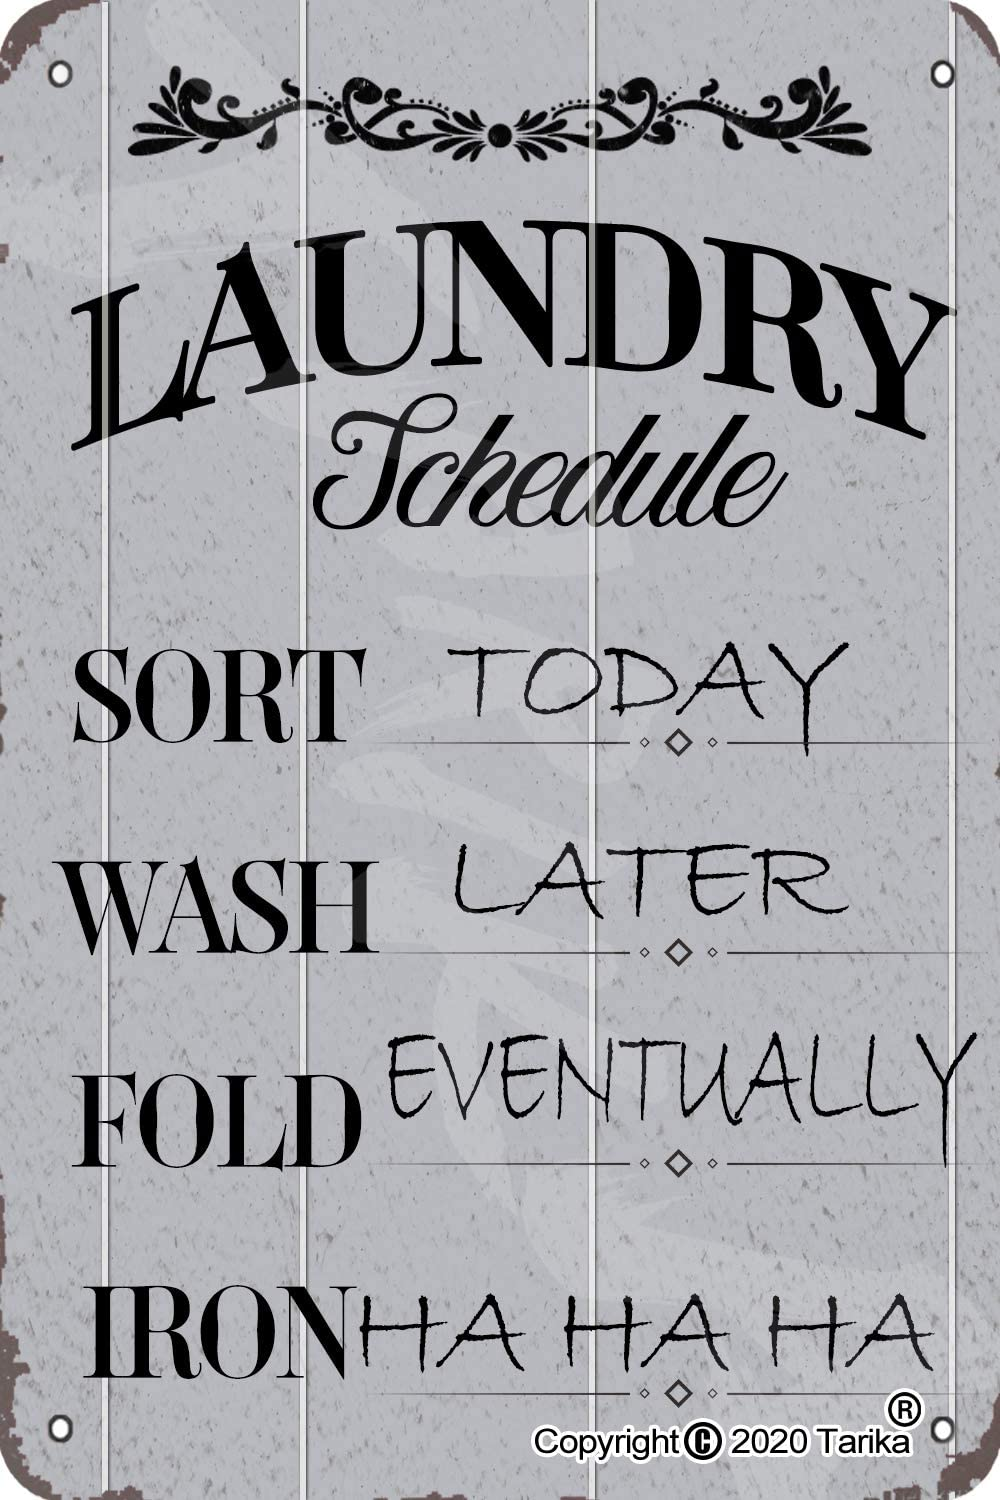 LaundrySchedule Tin Retro Look 20X30 cm Decoration Painting Sign for Home Kitchen Bathroom Farm Garden Garage Inspirational Quotes Wall Decor